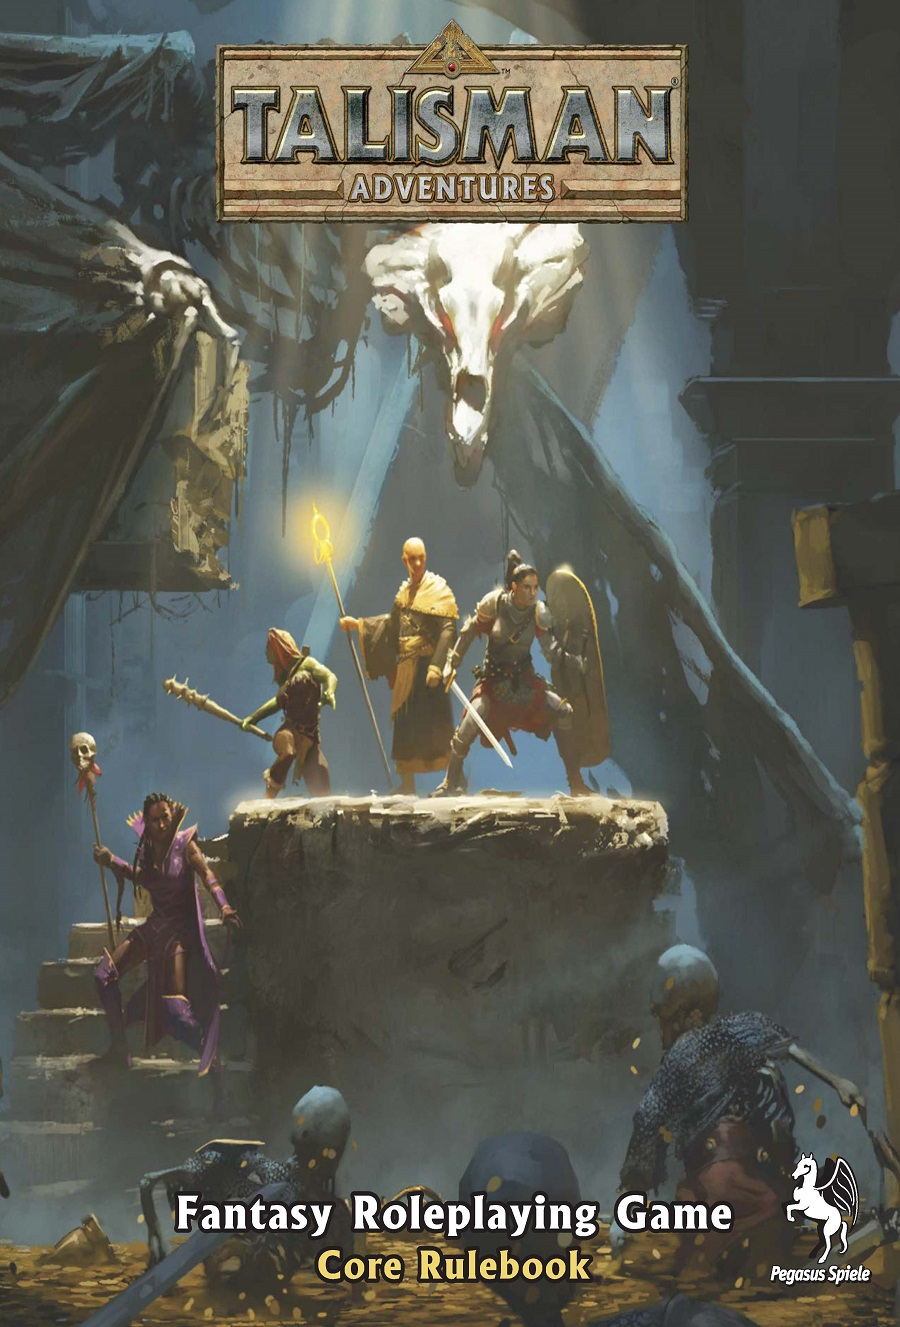 Talisman Adventures Fantasy Roleplaying Game